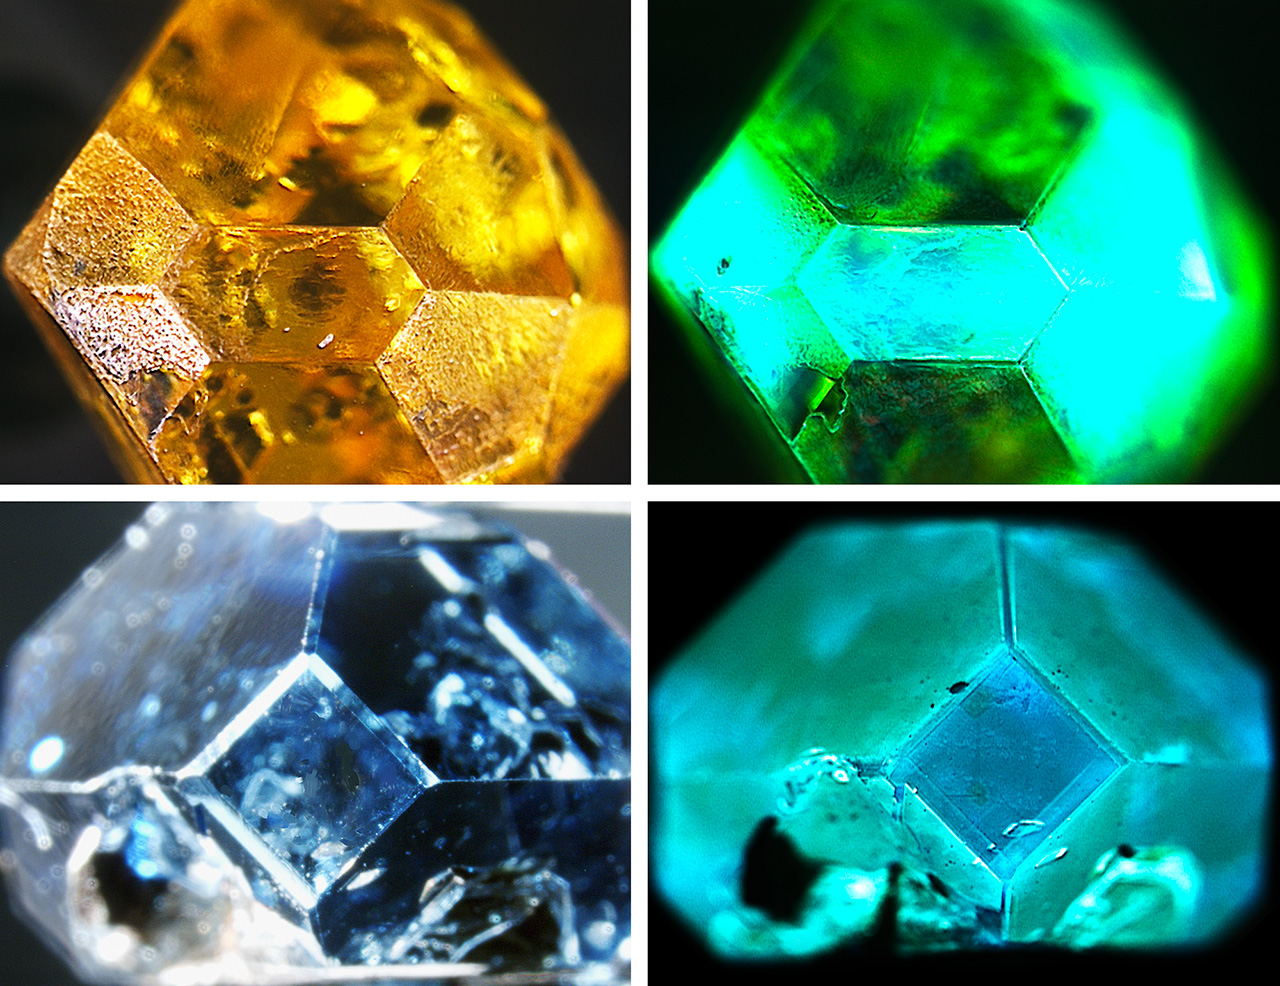 DiamondView fluorescence reactions of HPHT synthetics